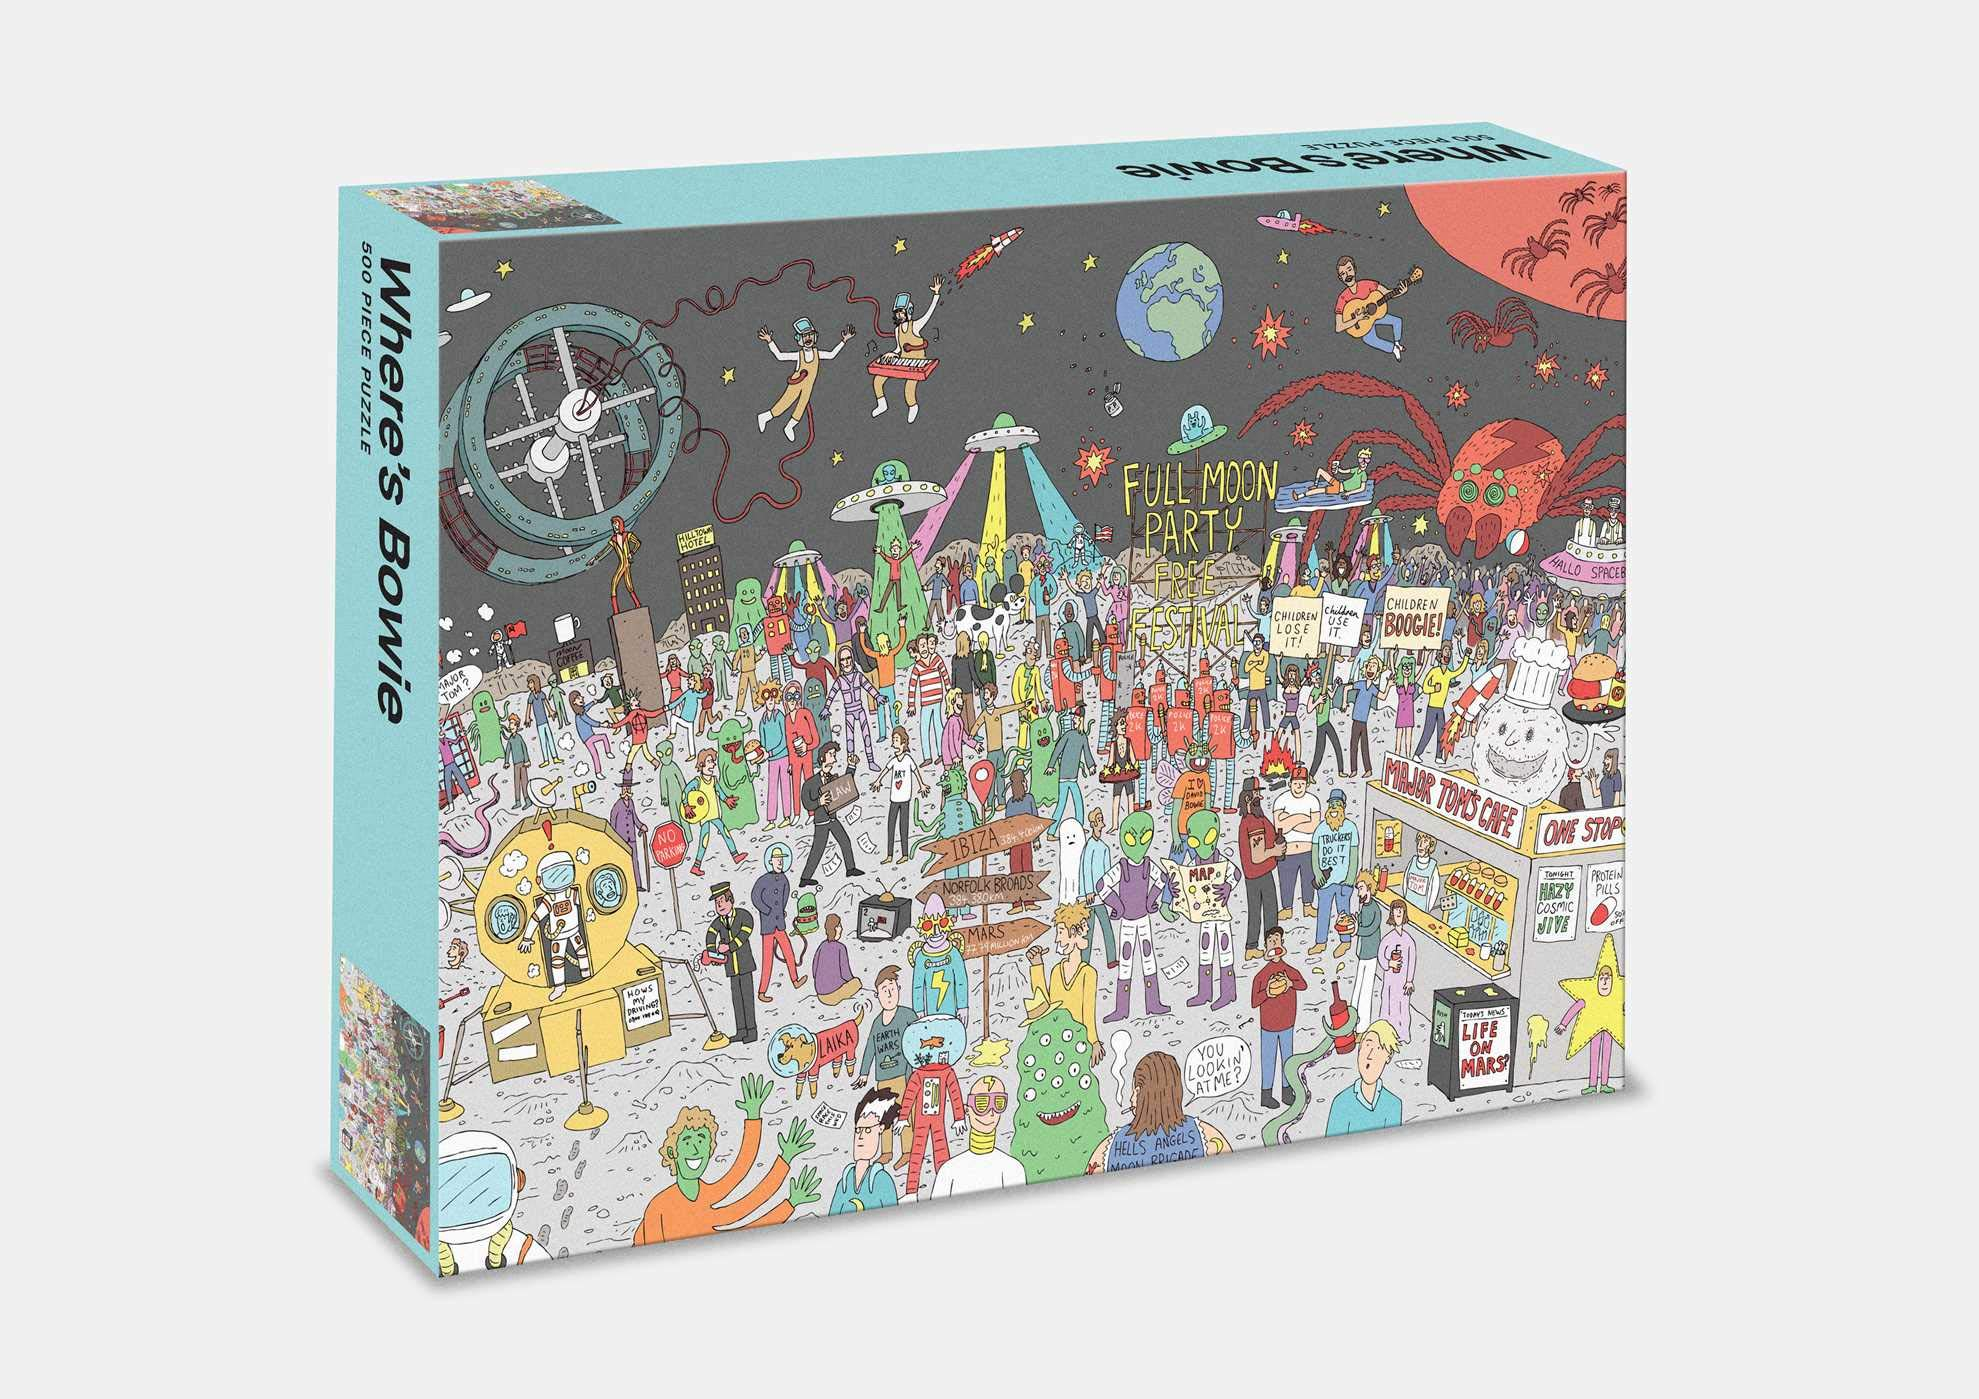 Wheres Bowie? 500 piece jigsaw puzzle: Jigsaw Puzzle: A 500-piece Quest to Find Our Beloved Starman: Amazon.es: Gahan, Kev: Libros en idiomas extranjeros